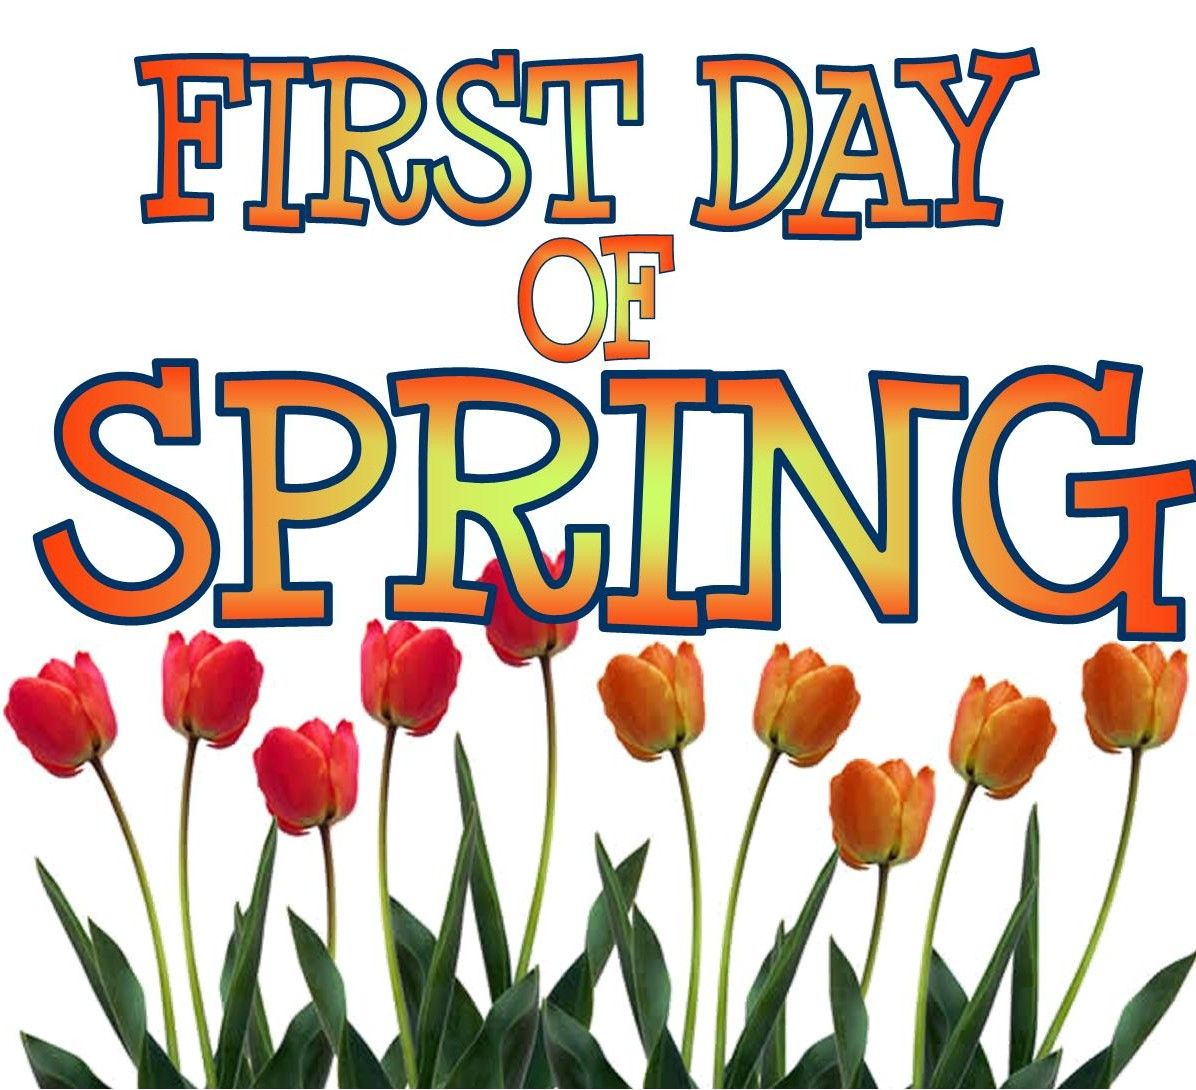 first day of spring pictures  photos  and images for happy first day of spring clipart first day of spring clipart black and white